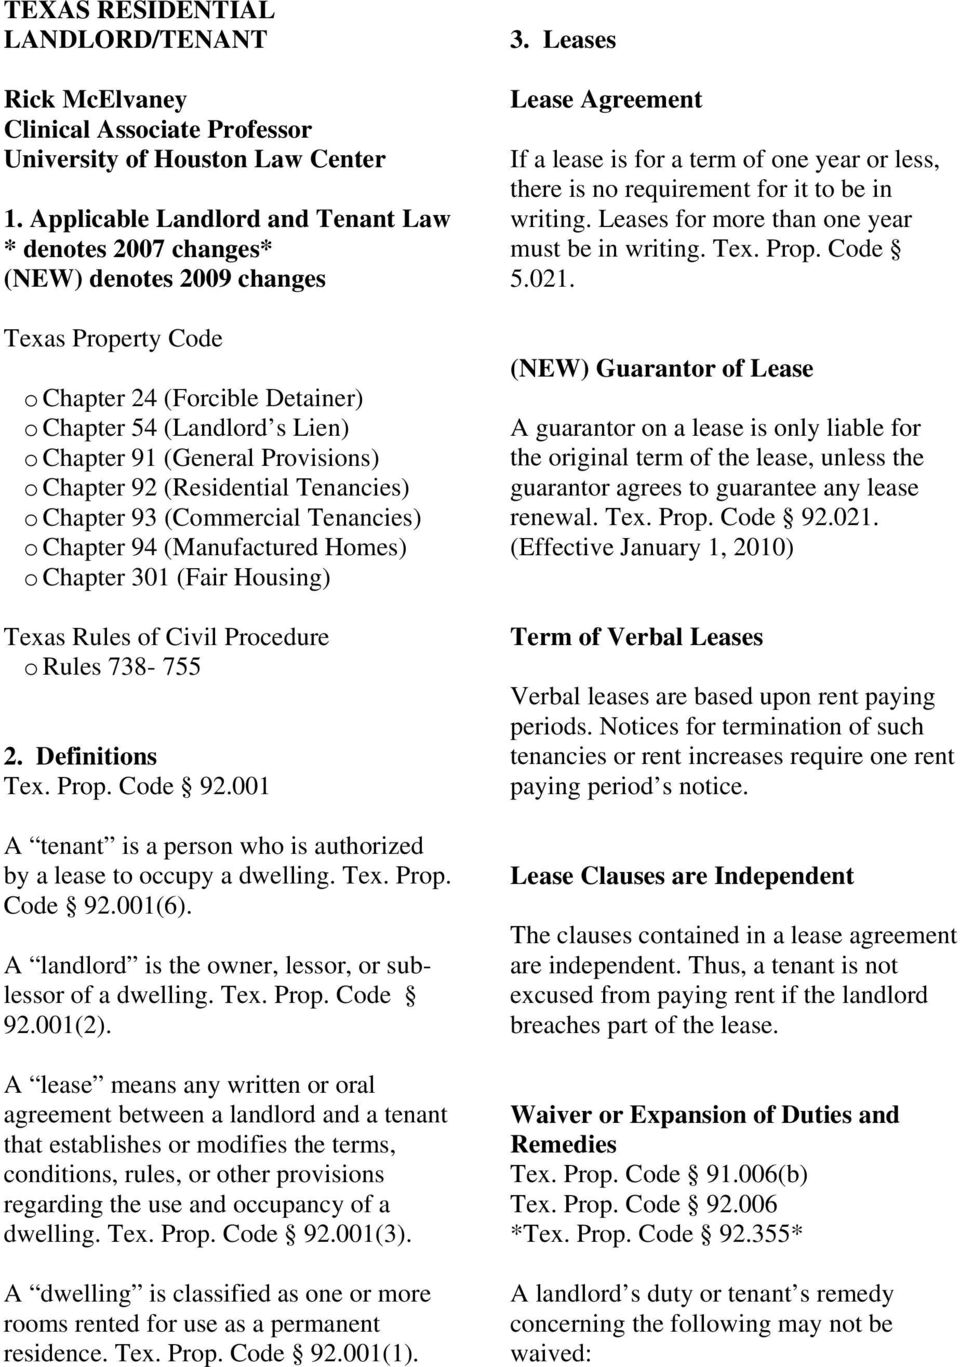 Texas Residential Landlordtenant 3 Leases Lease Agreement Rick